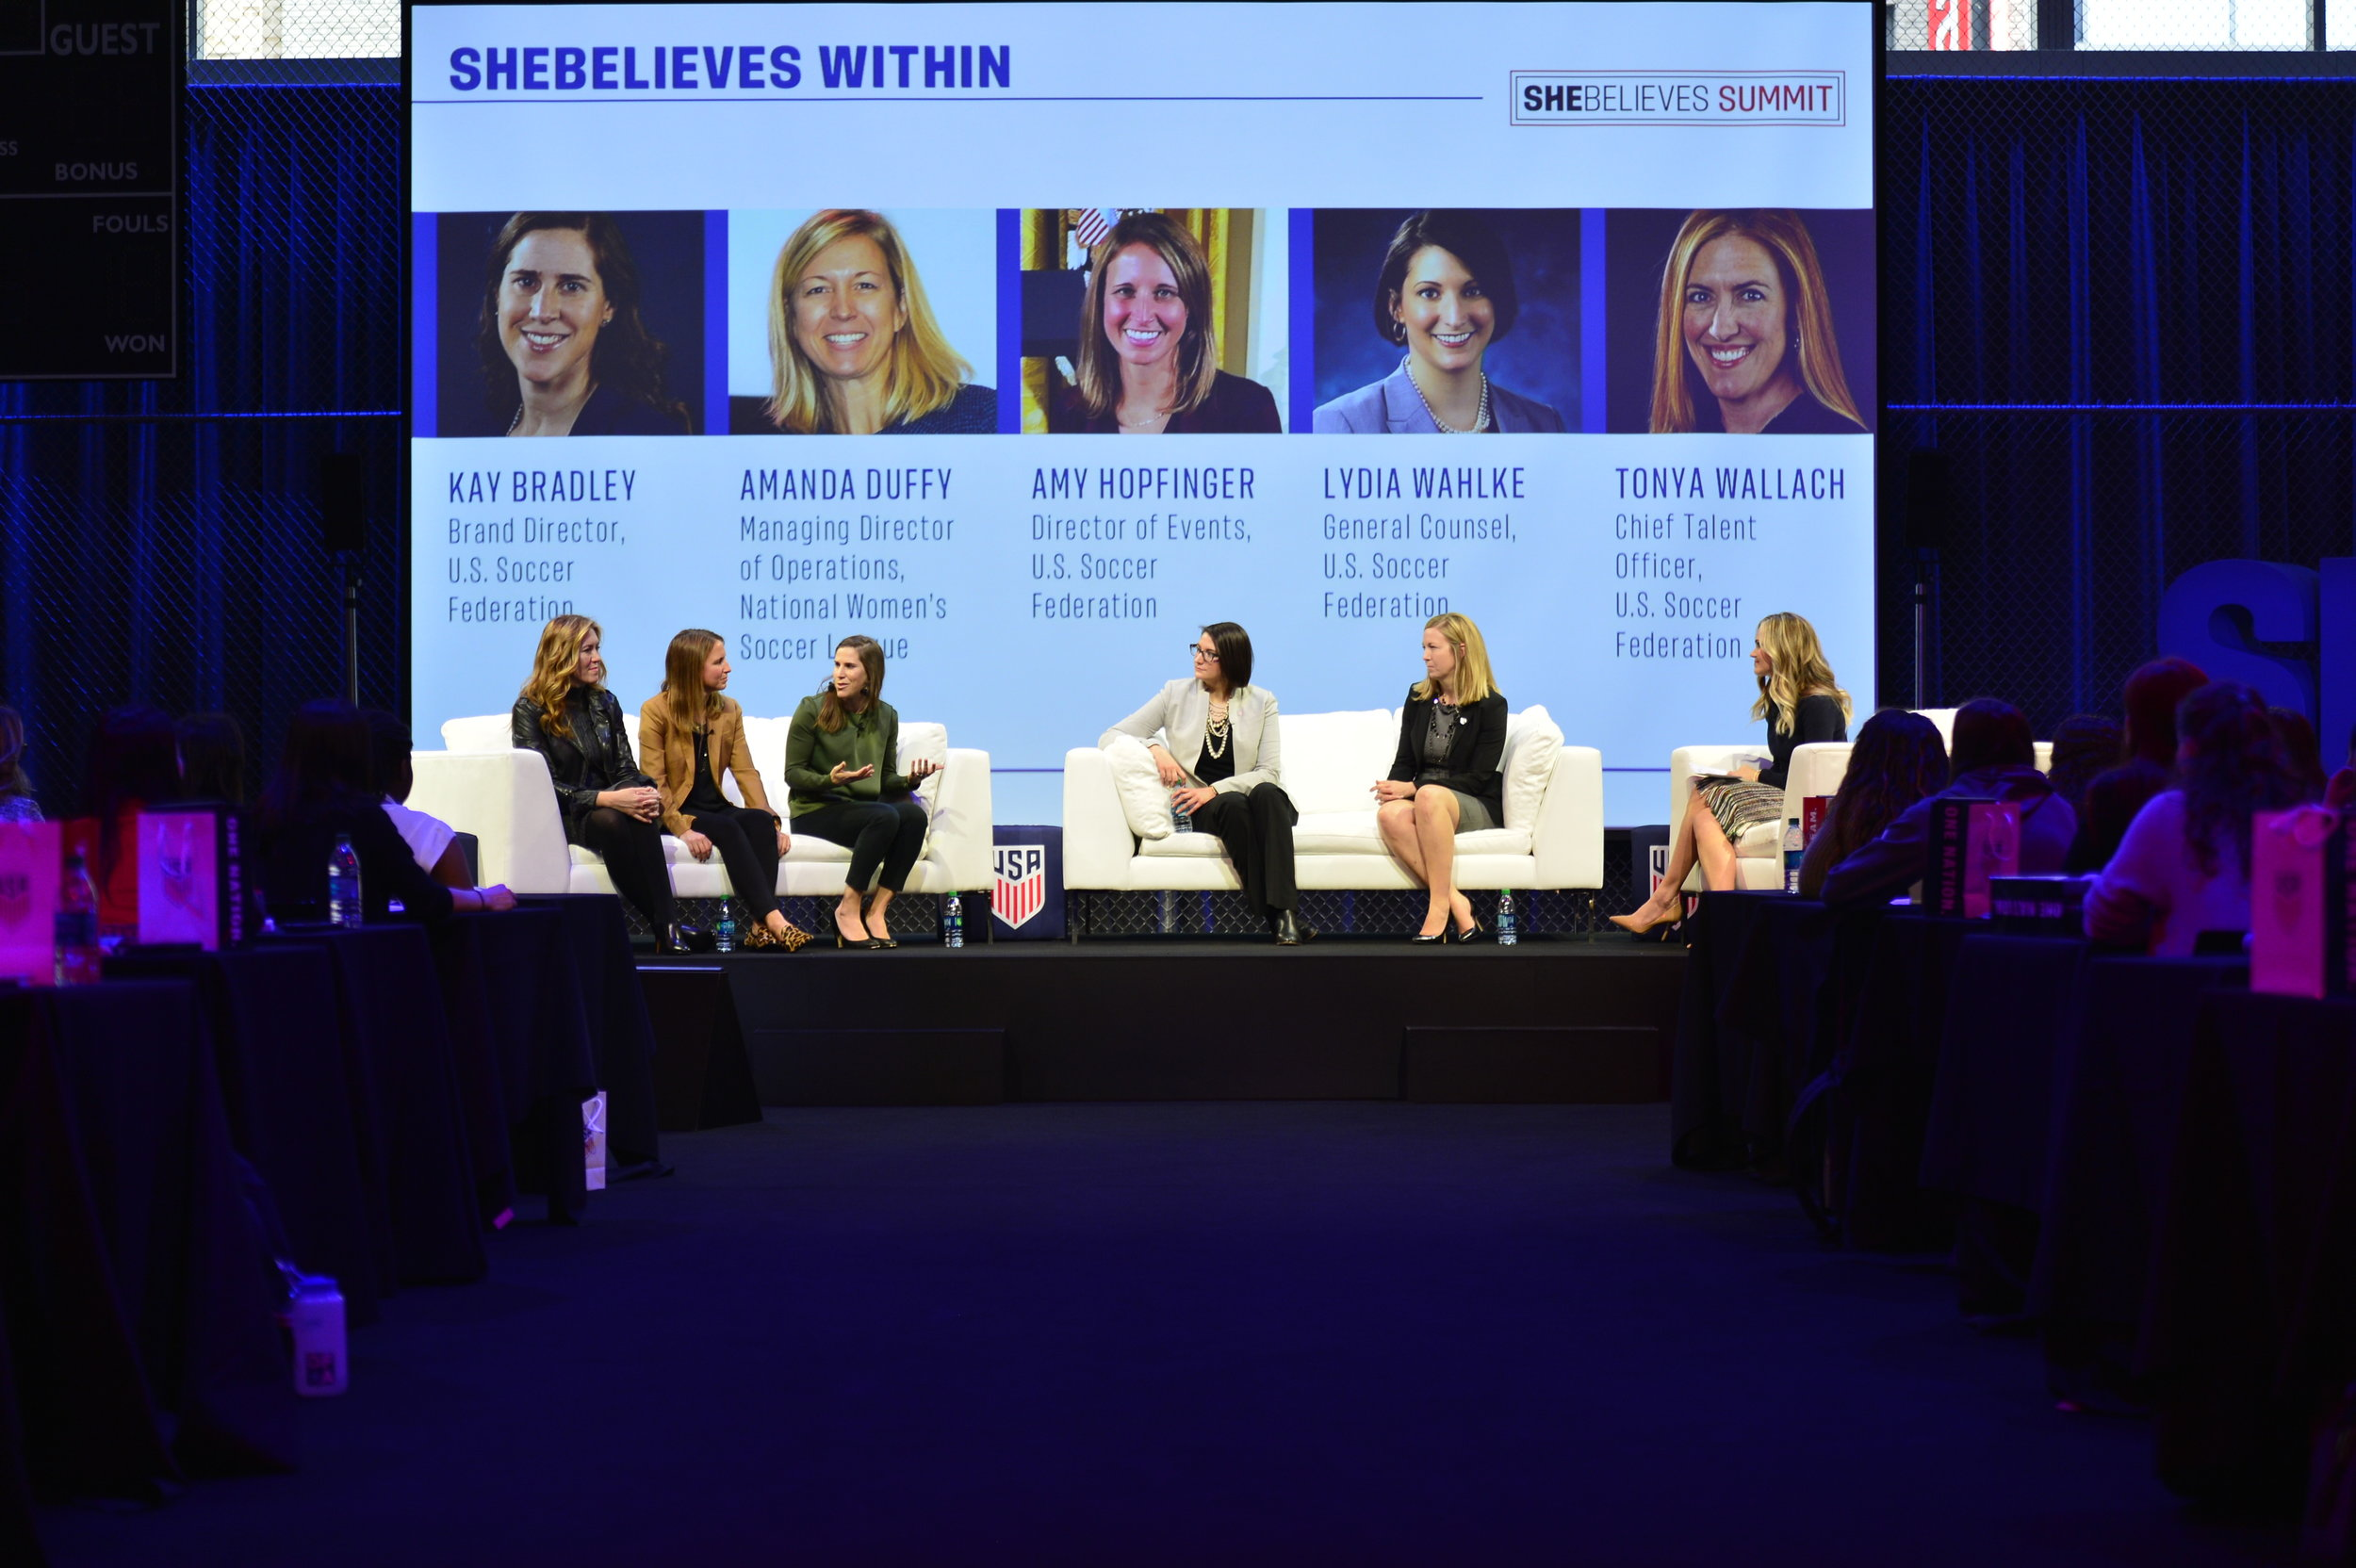 Tonya Wallach (Chief Talent Officer at U.S. Soccer Federation), Amy Hopfinger (Director of Events at U.S. Soccer Federation), Kay Bradley (Brand Director at U.S. Soccer Federation), Lydia Wahlke (General Counsel at U.S. Soccer Federation), and Amanda Duffy (Director of Operations at NWSL) make up the SheBelieves Within Panel highlighting the inception of the SheBelieves movement.